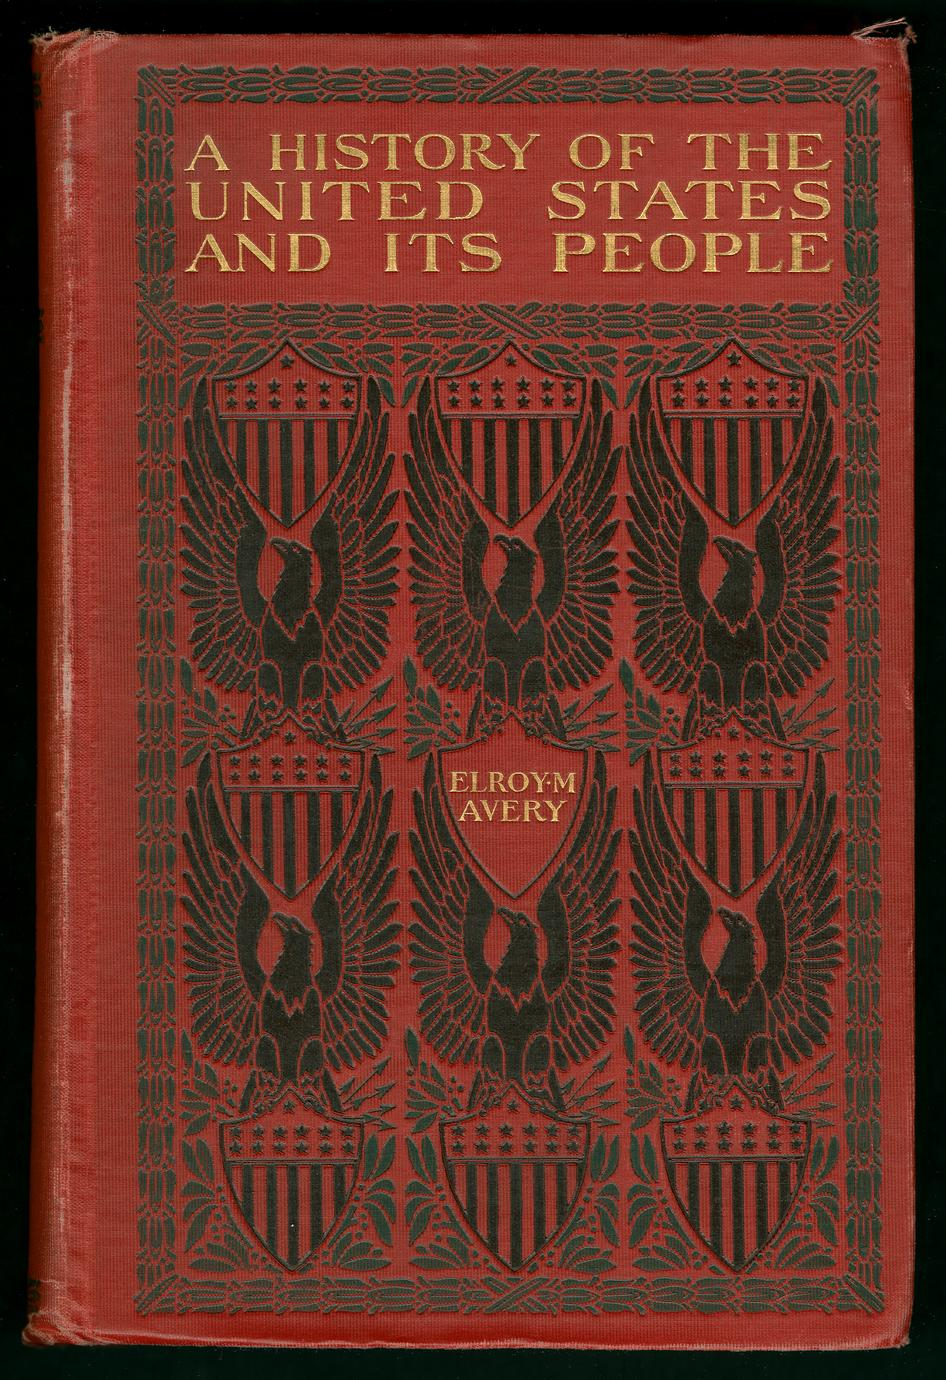 A history of the United States and its people, from their earliest records to the present time (1 of 3)